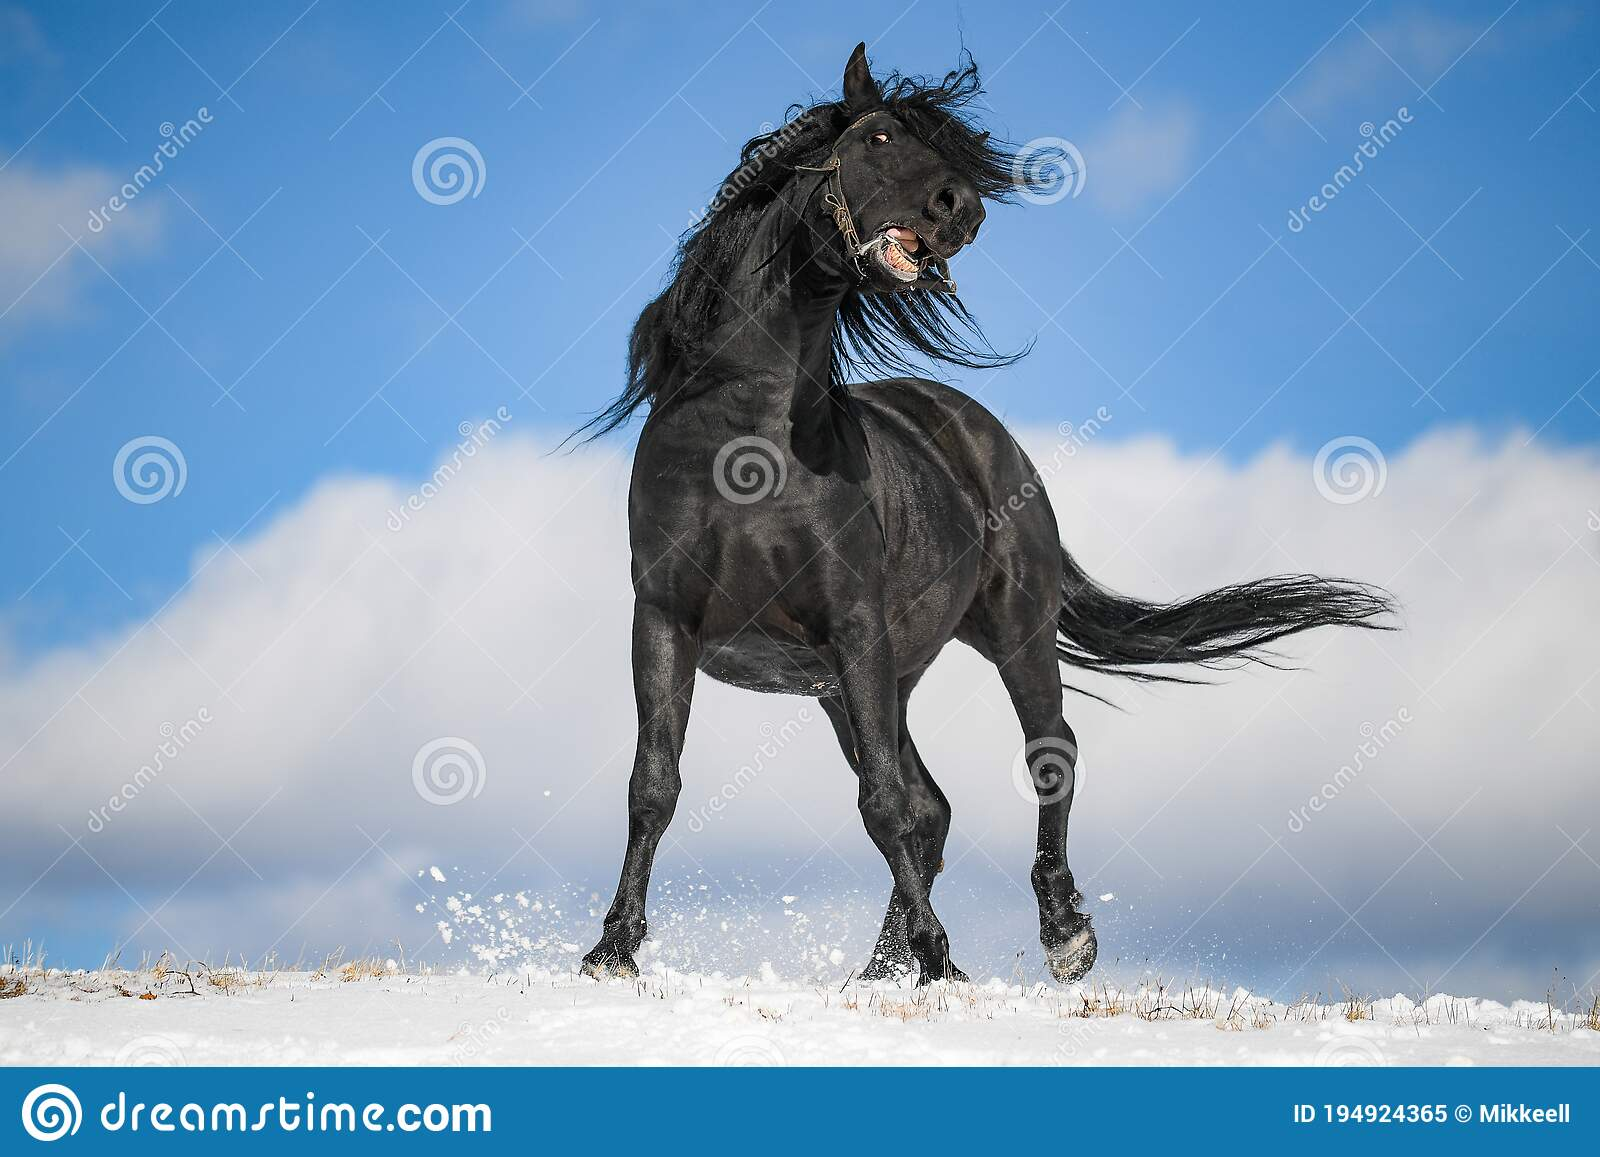 4 339 Black Horse Snow Photos Free Royalty Free Stock Photos From Dreamstime